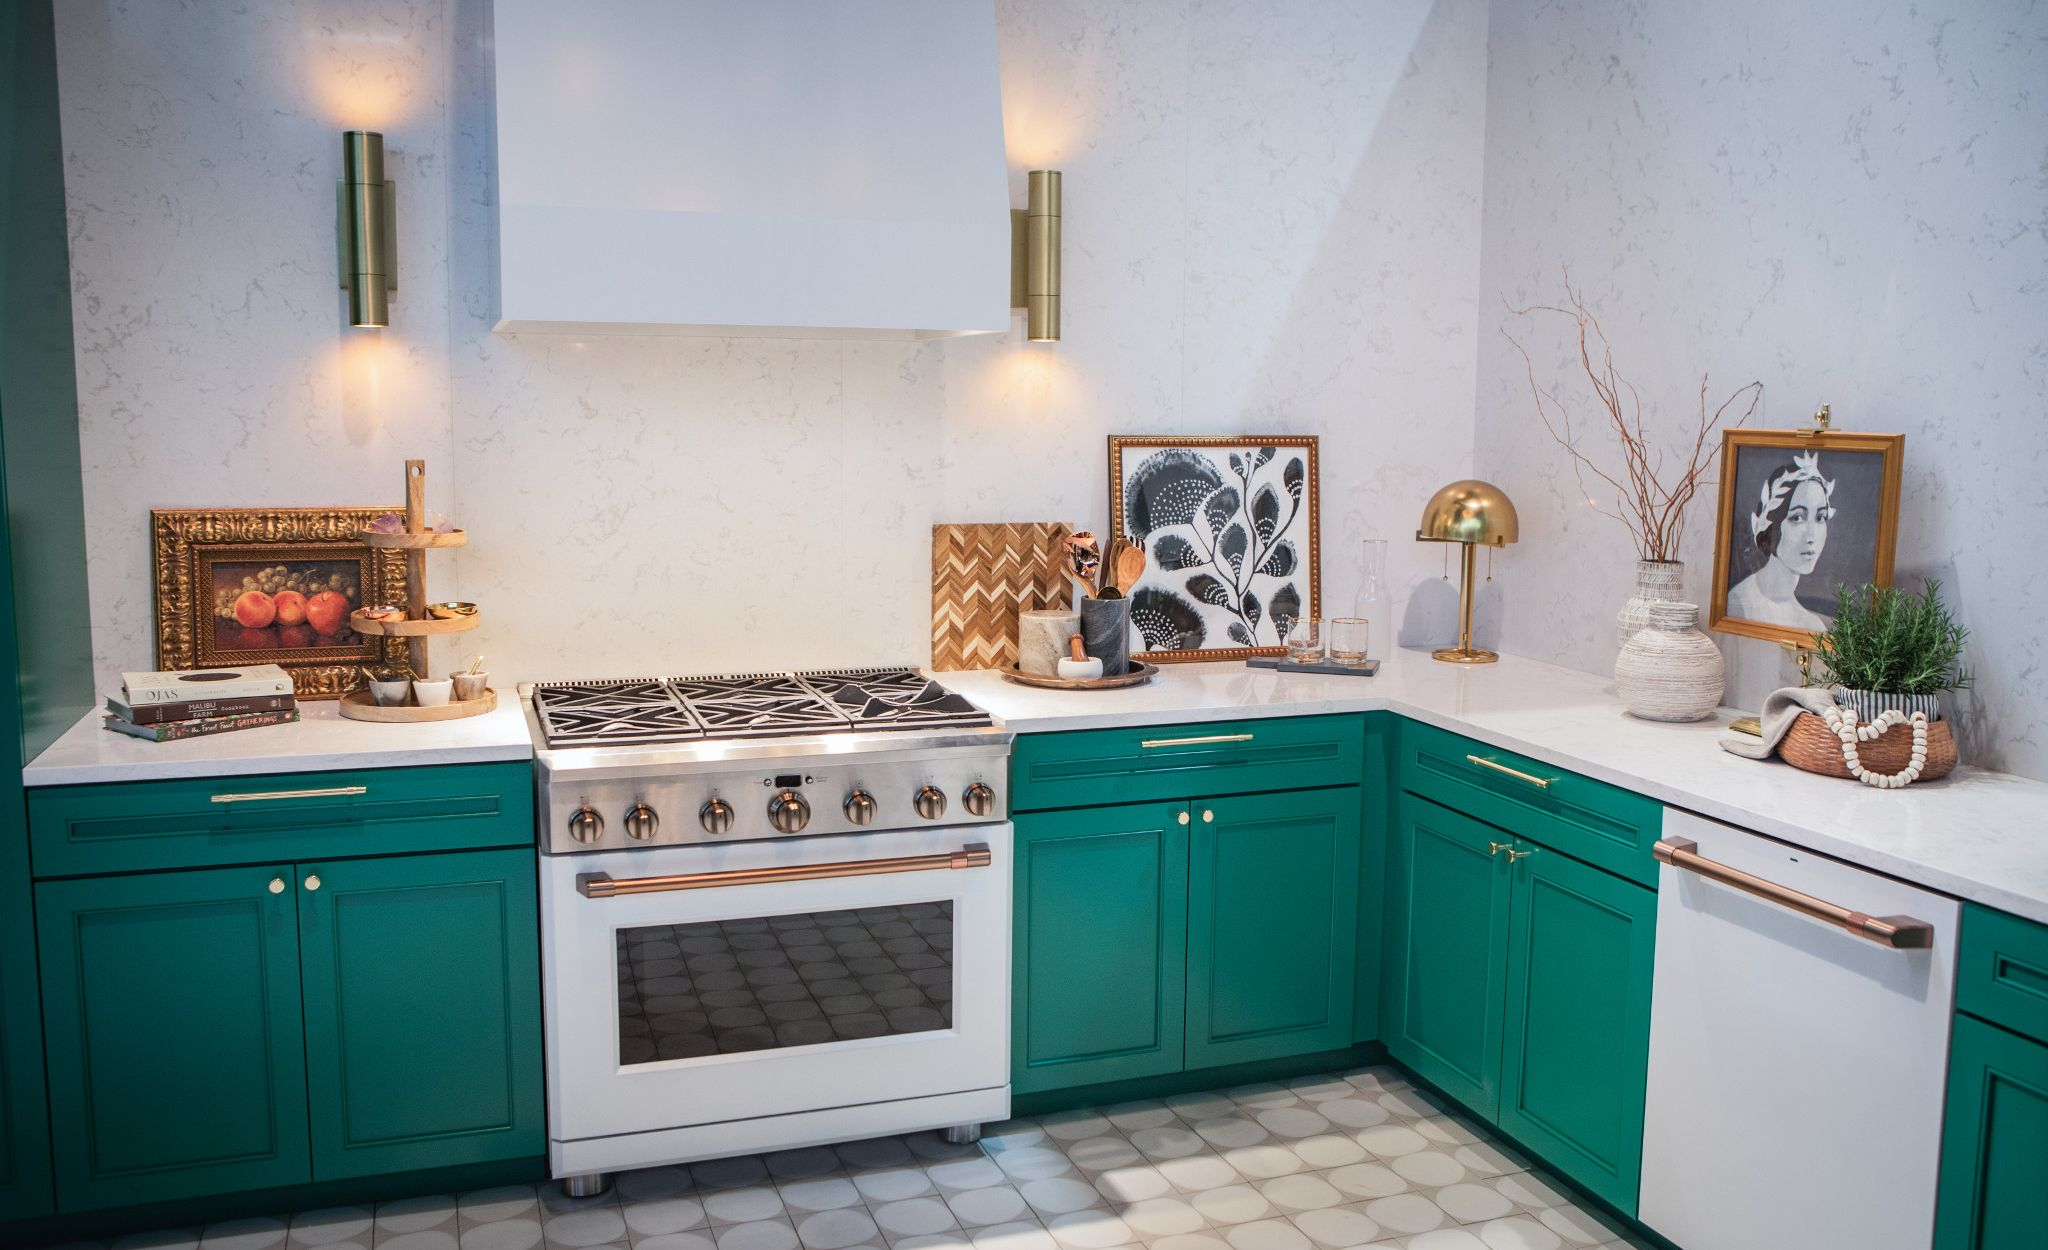 White appliances with brushed copper hardware paired with mixed metals, green cabinetry, and a Cambria Torquay backsplash and countertops.